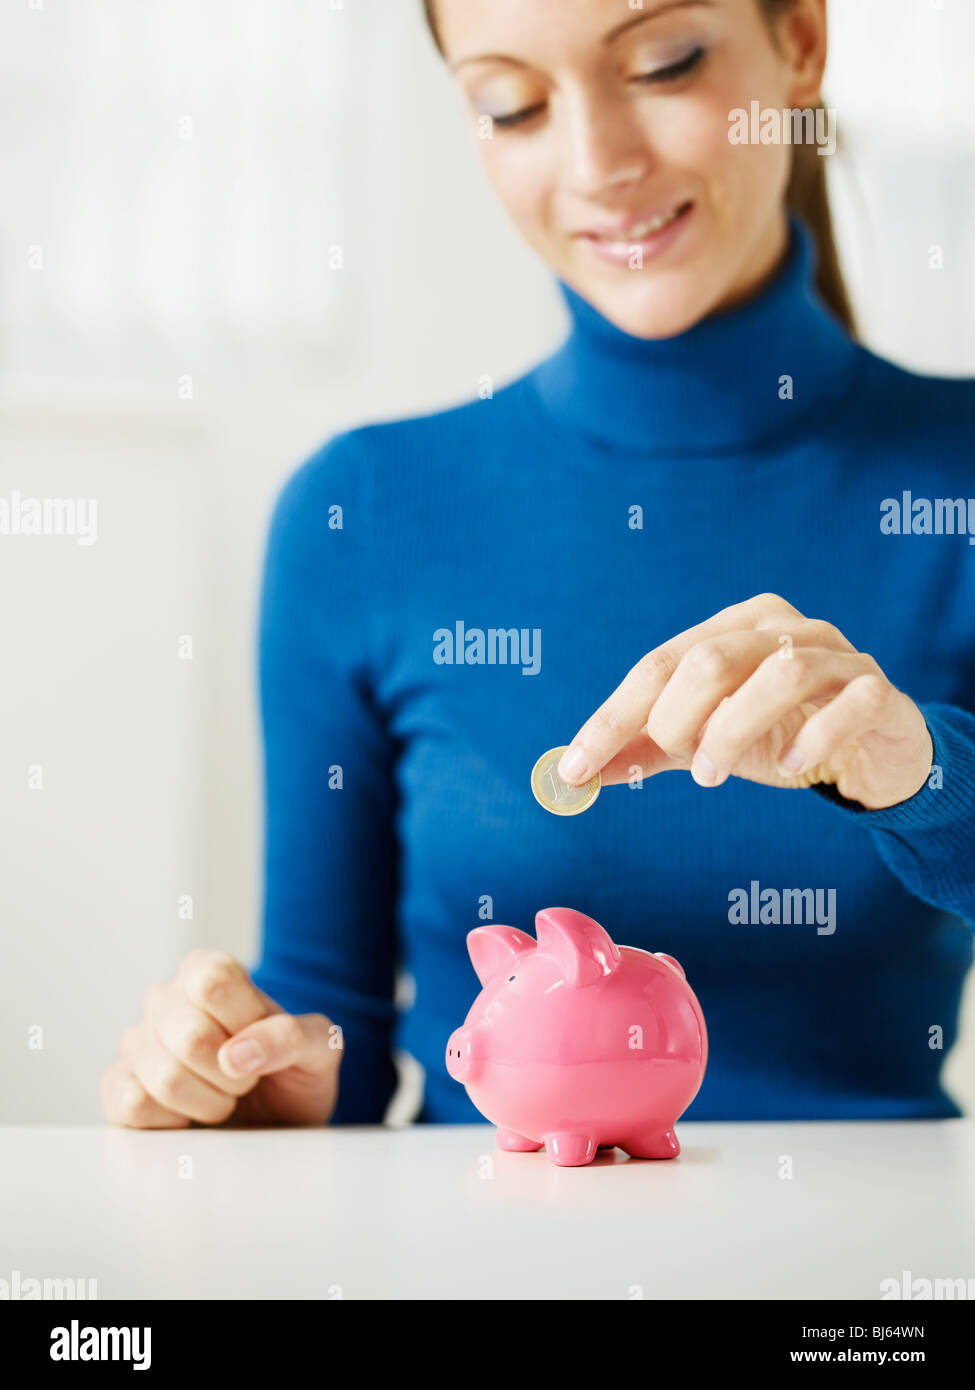 woman putting 1 euro in small piggy bank. Selective focus, Copy space - Stock Image